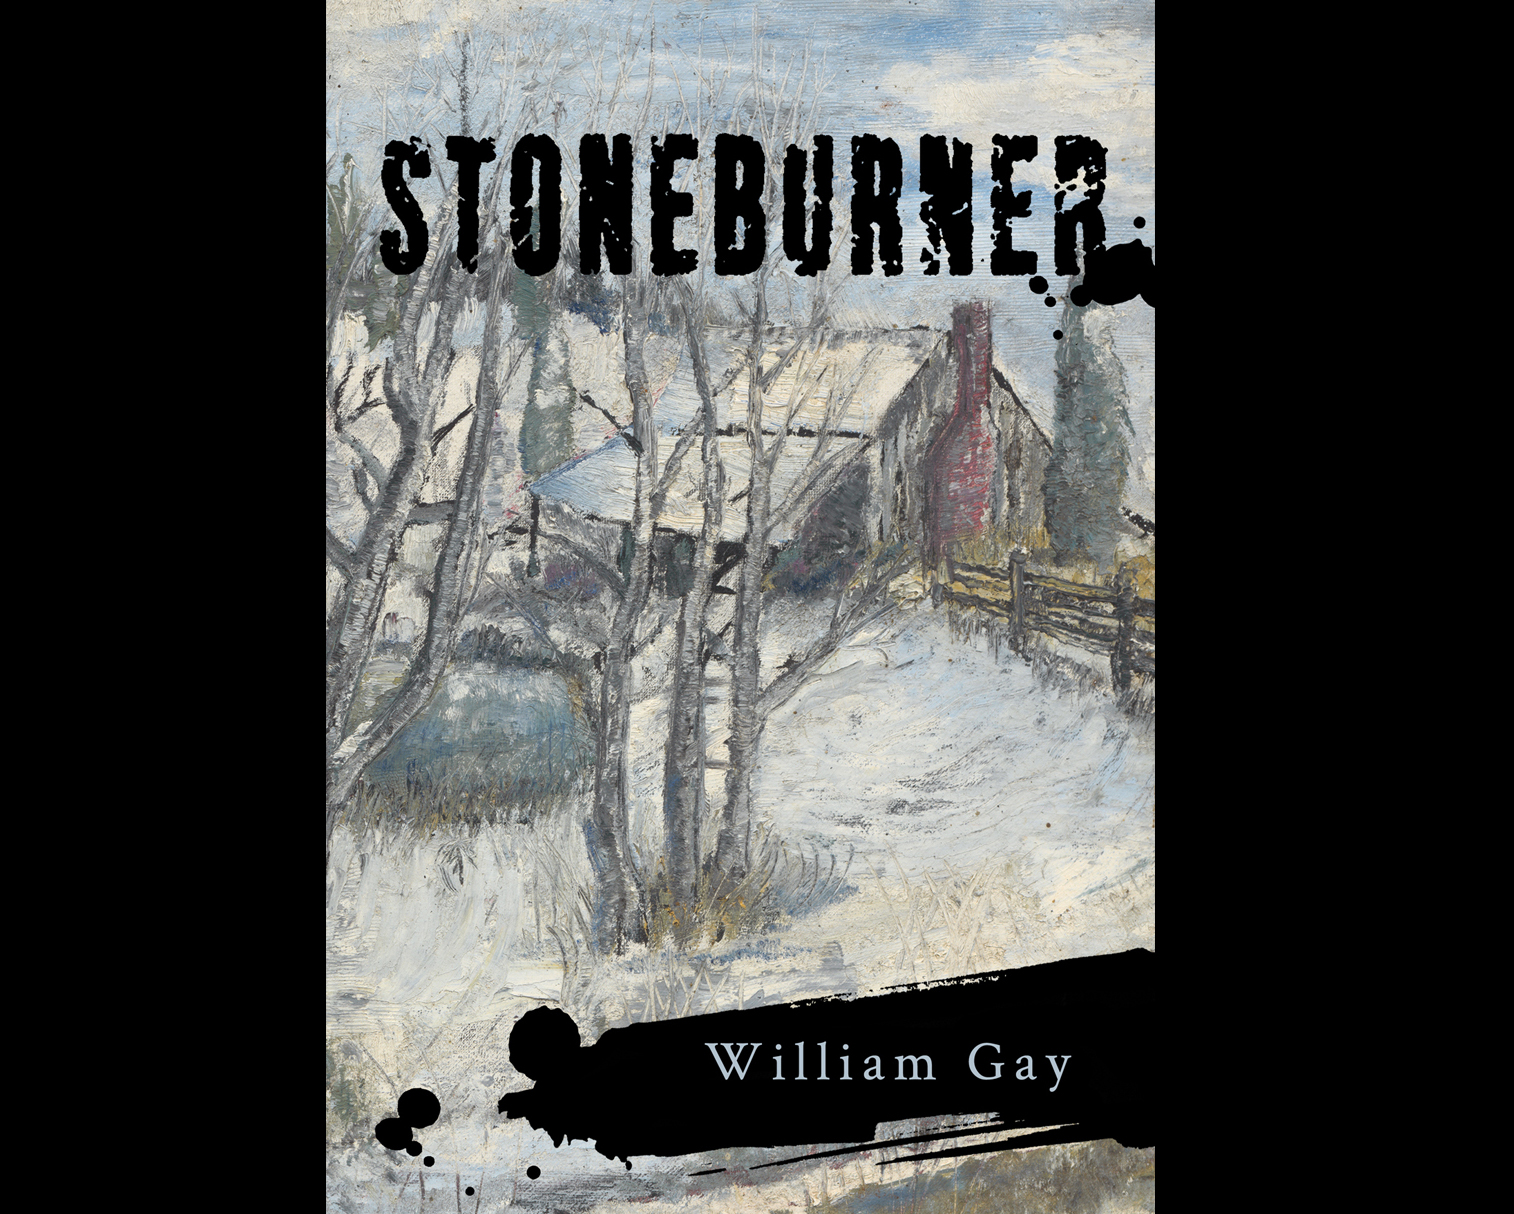 Stoneburner , by William Gay. Book Jacket Front Cover.  2017. Typography and design by Paul Nitsche. Painting by William Gay. Published by Anomolaic Press.